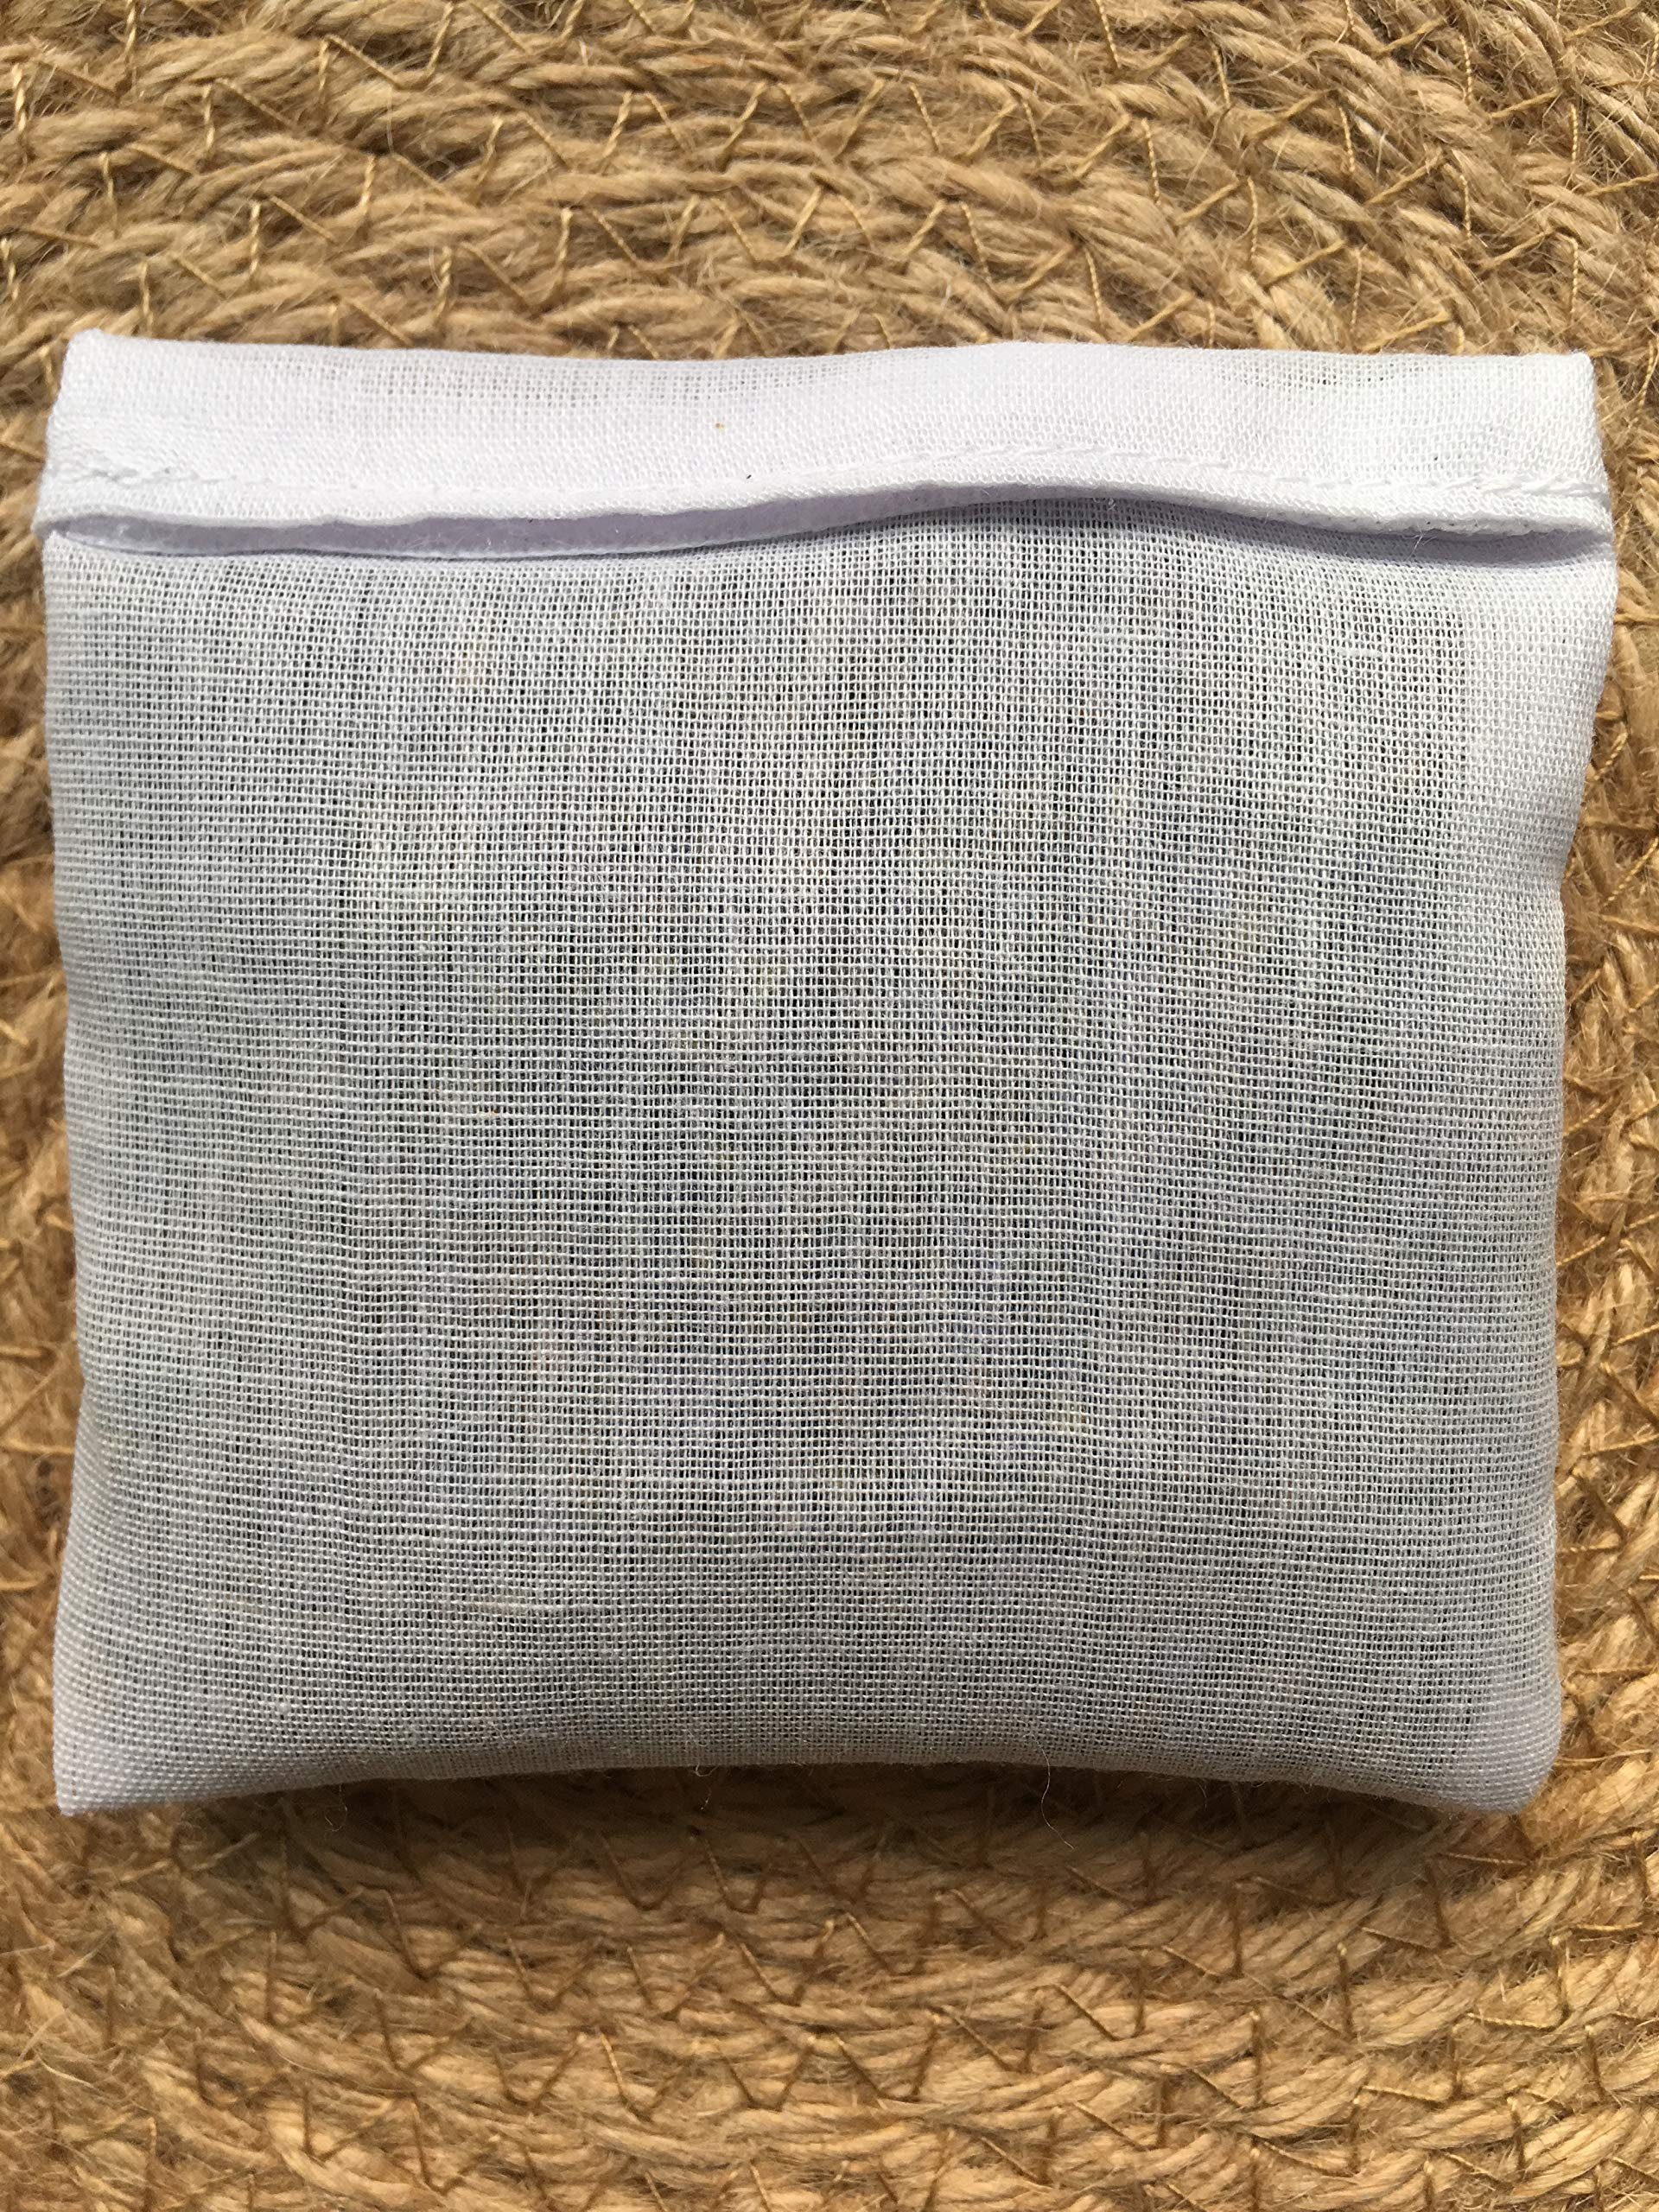 Hand Embroidered Lavender Pillow Sachet Bag ''Lavender Crown'' Natural Linen Cushion 6''x6'', Set of 3 by Minhcraft (Image #5)